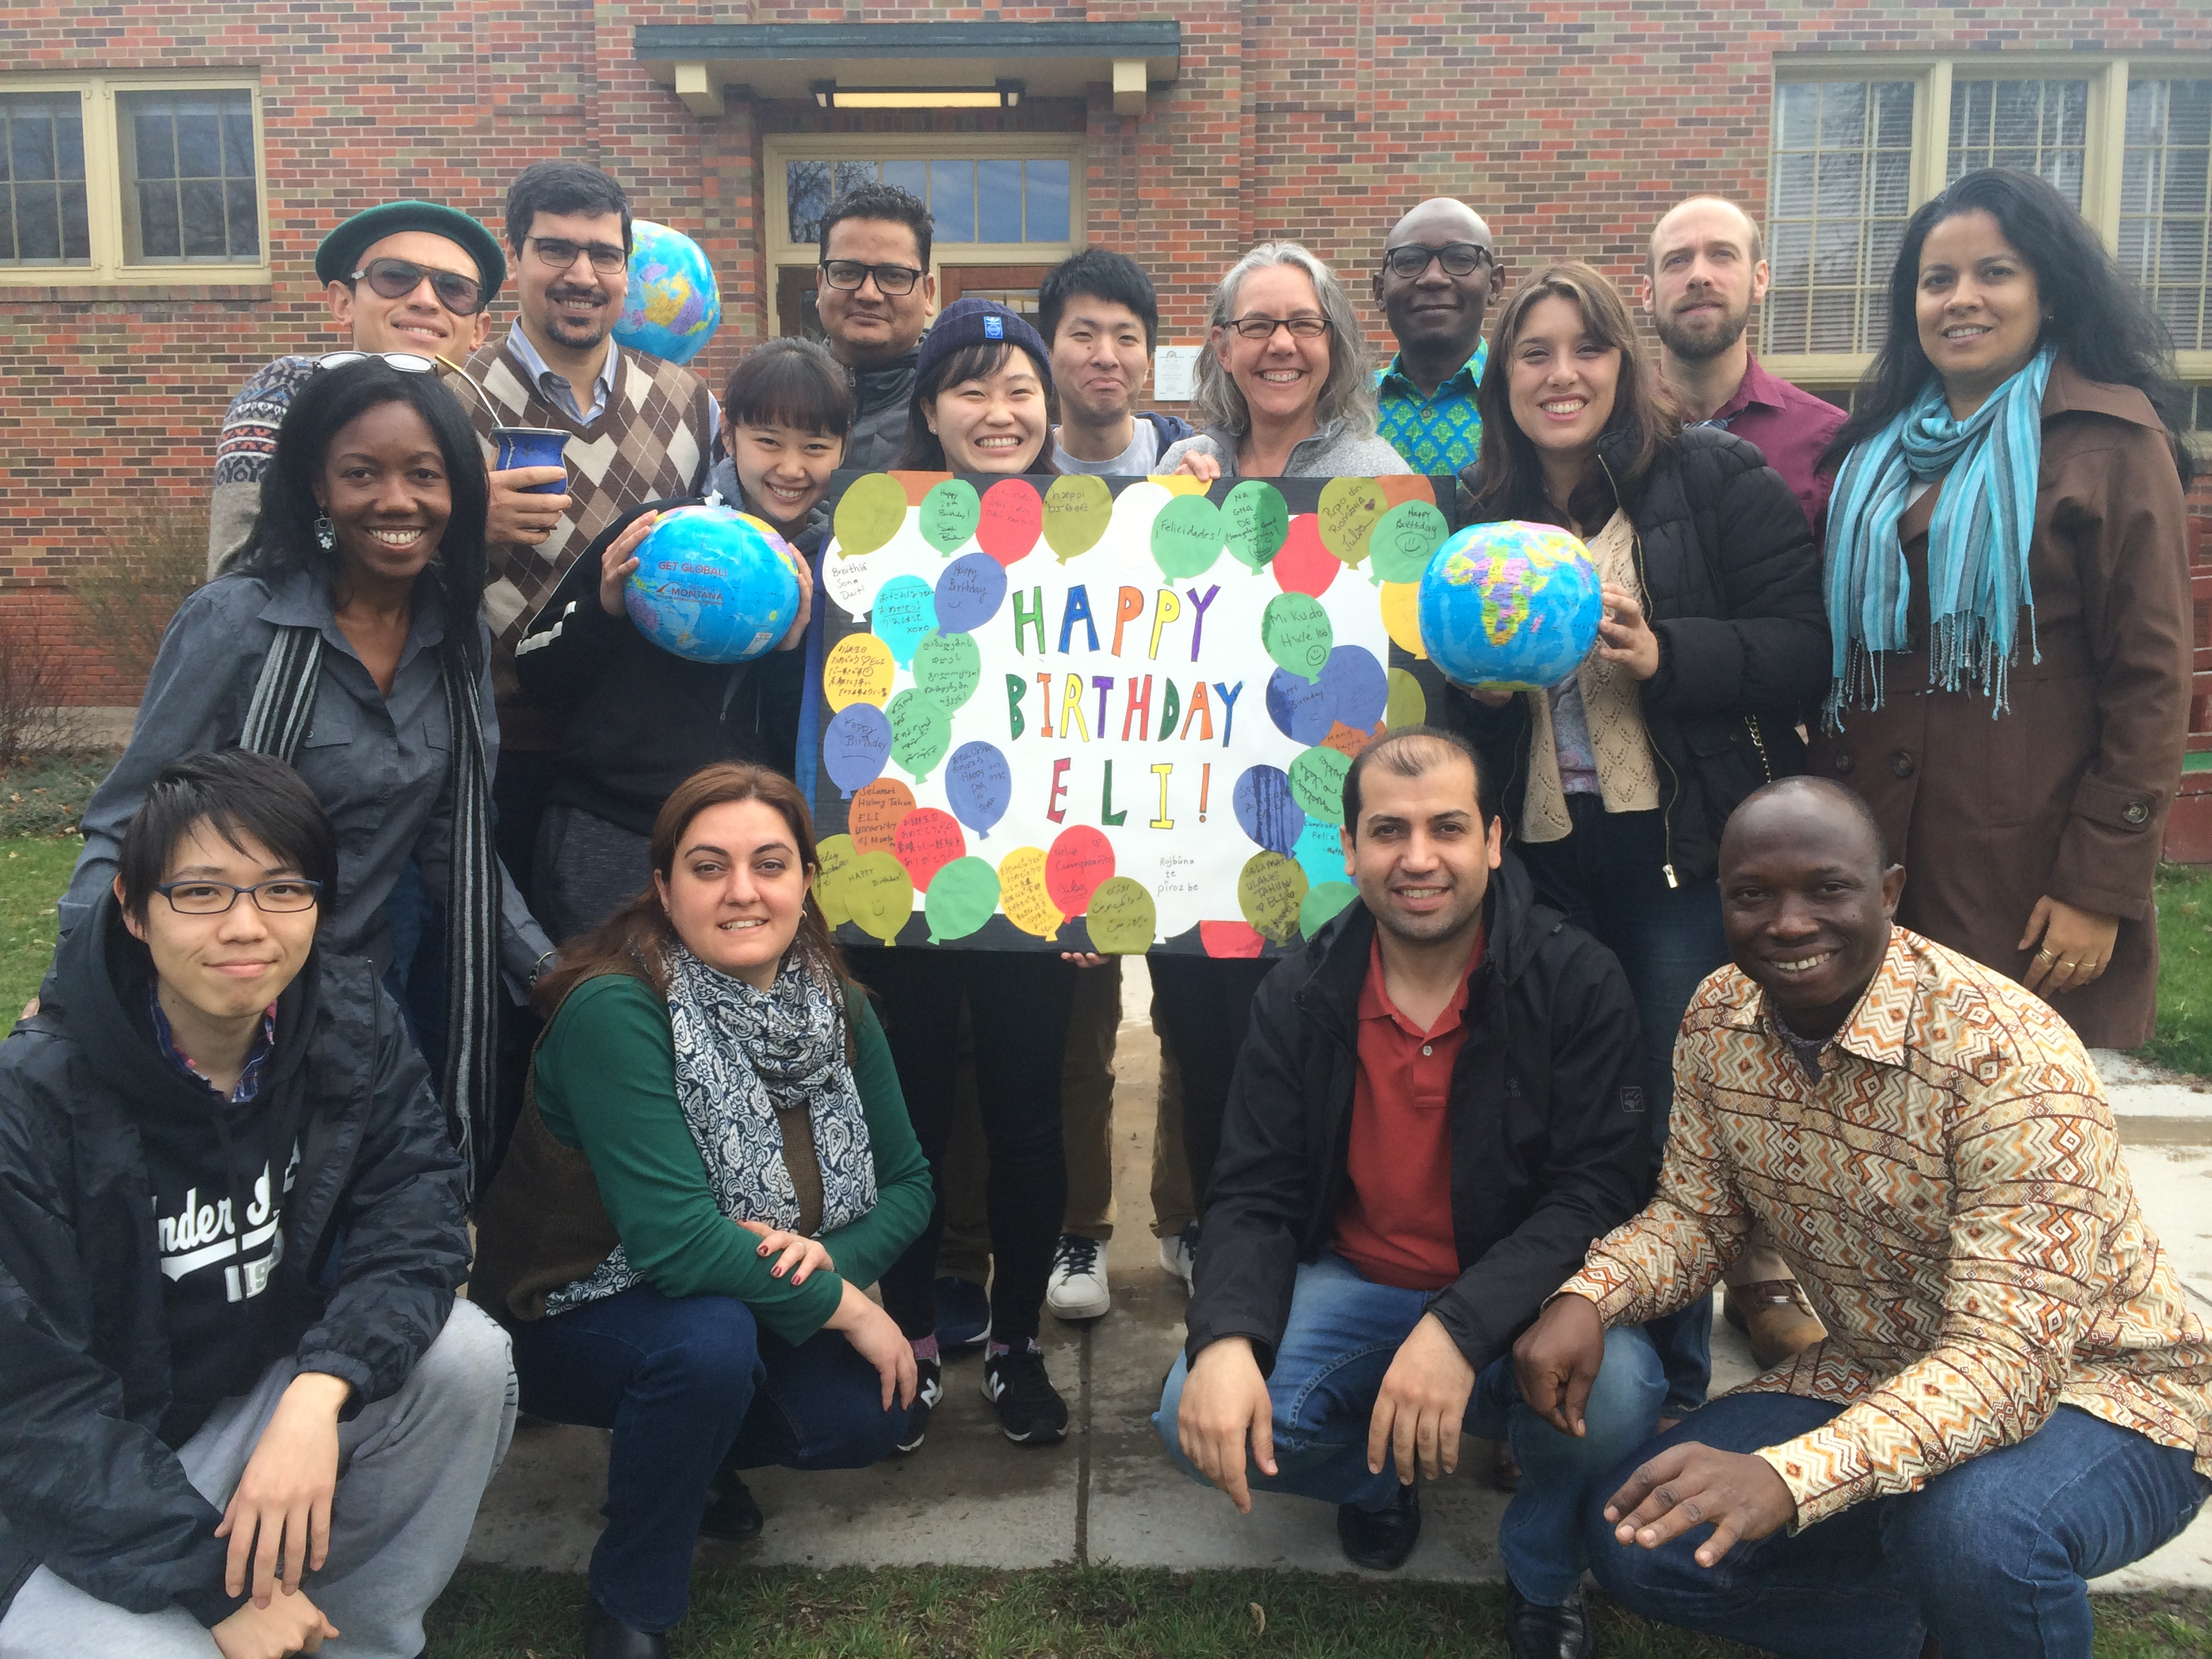 Students of the English Language Institute at UM stand with birthday poster